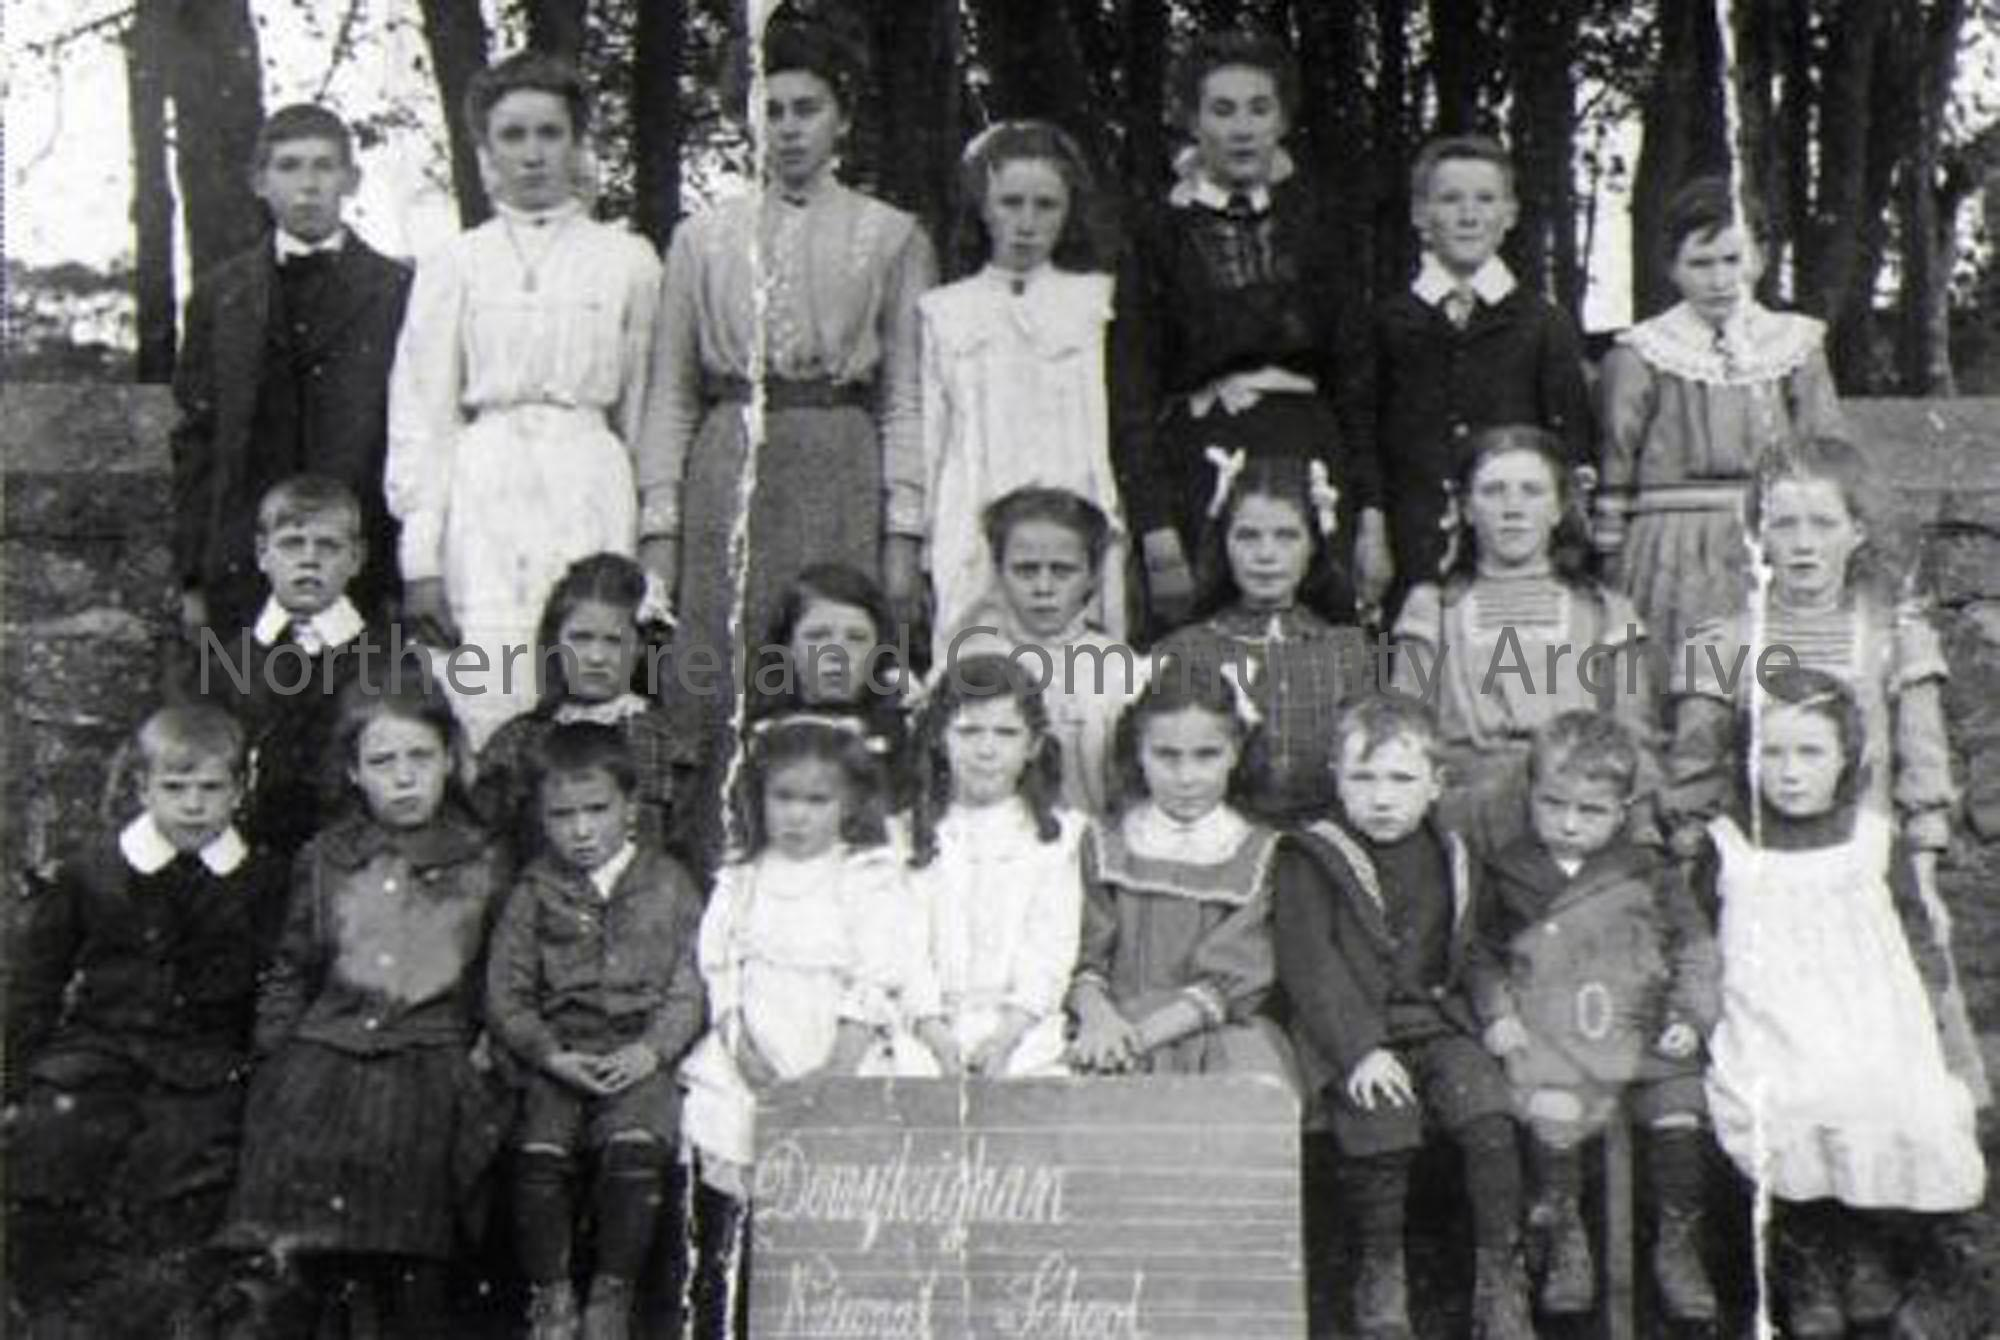 Derrykeighan National School, 1912